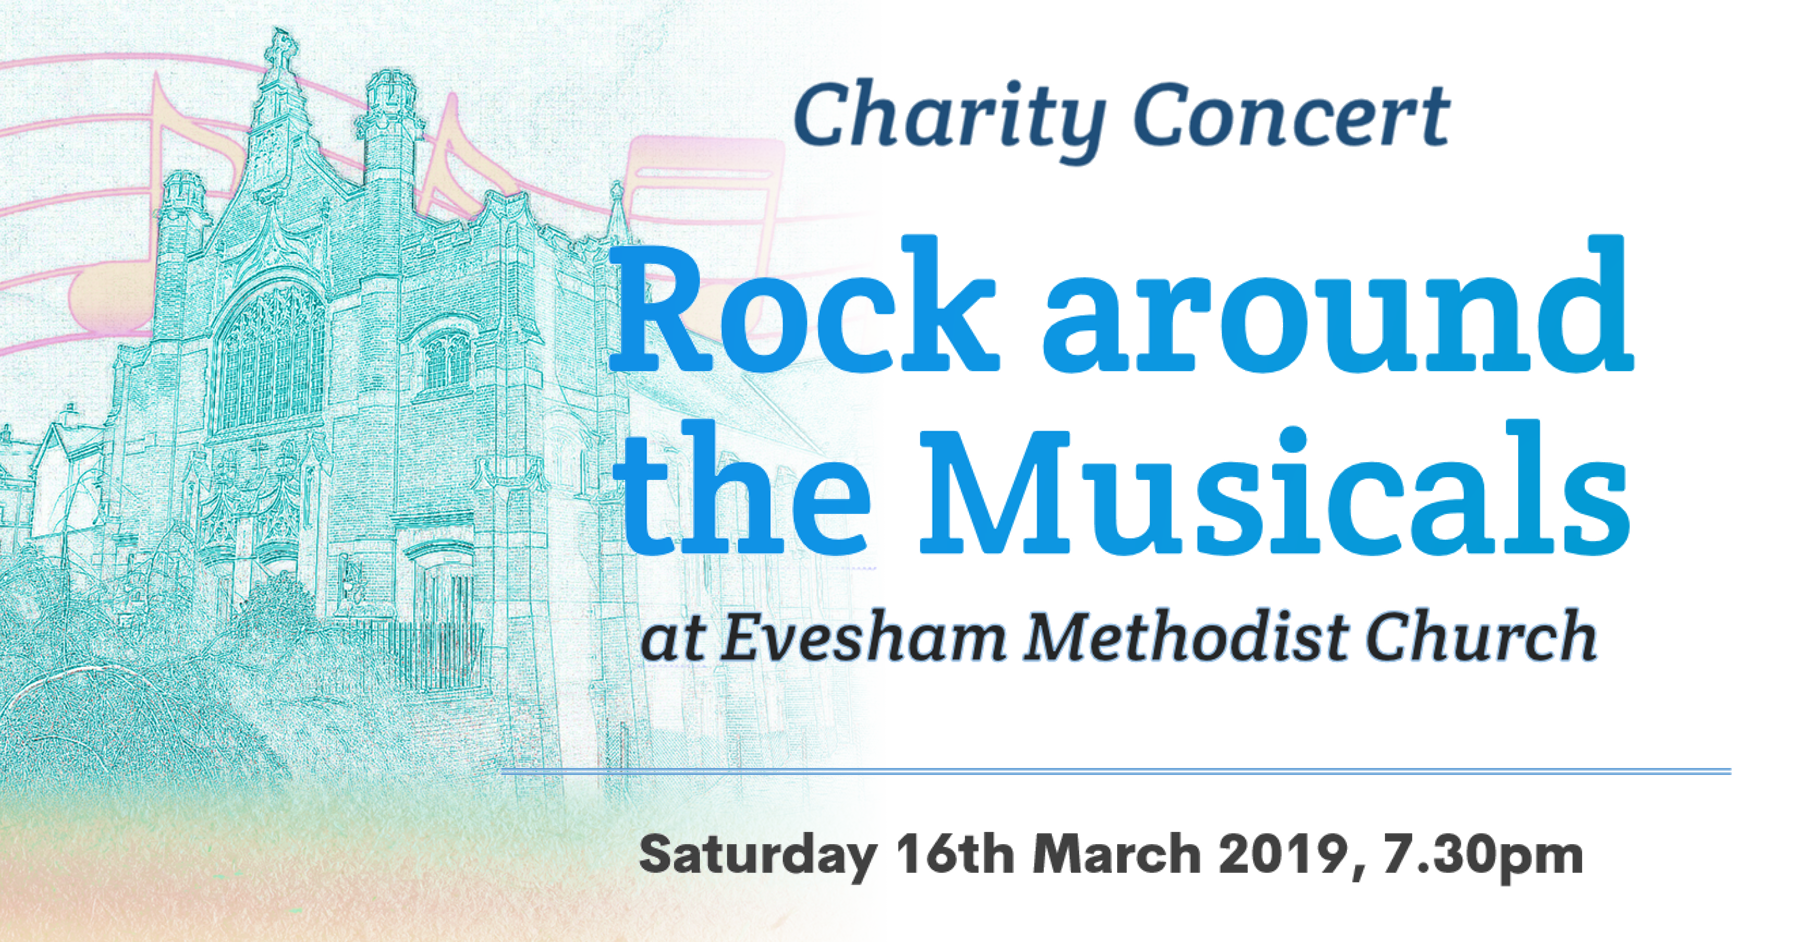 Charity Concert – Rock around the Musicals!